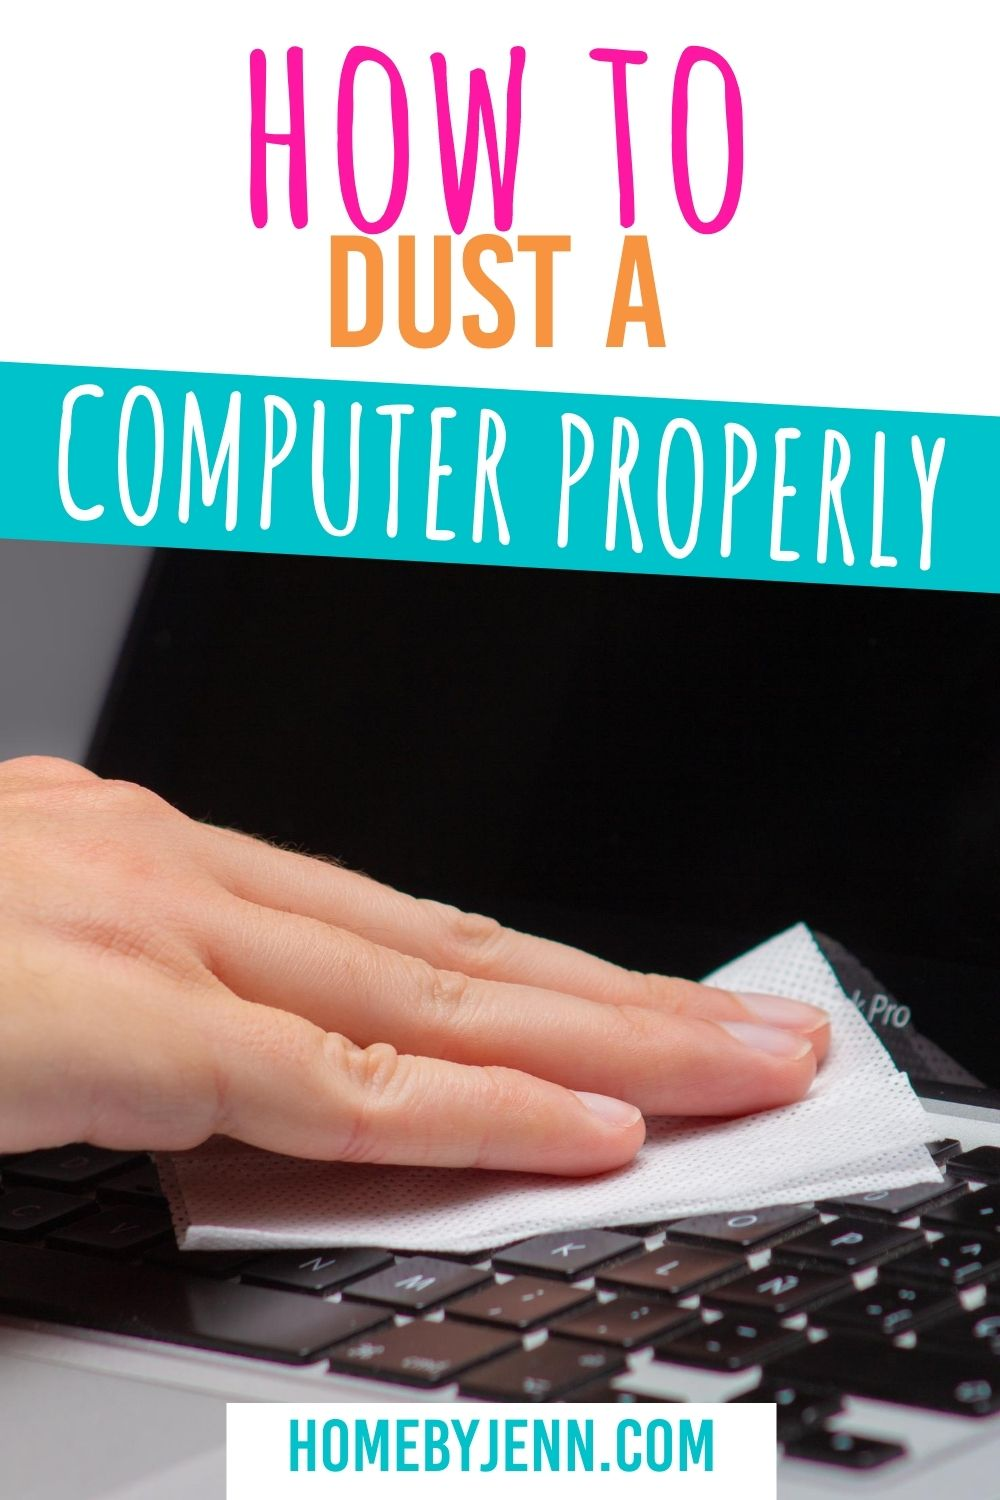 Learn tips and tricks on how to dust a computer the right way. Dusting a computer is easy, when you have the right supplies. #cleaning #office #computer #microfiber #howto #tips #tricks #guide via @homebyjenn